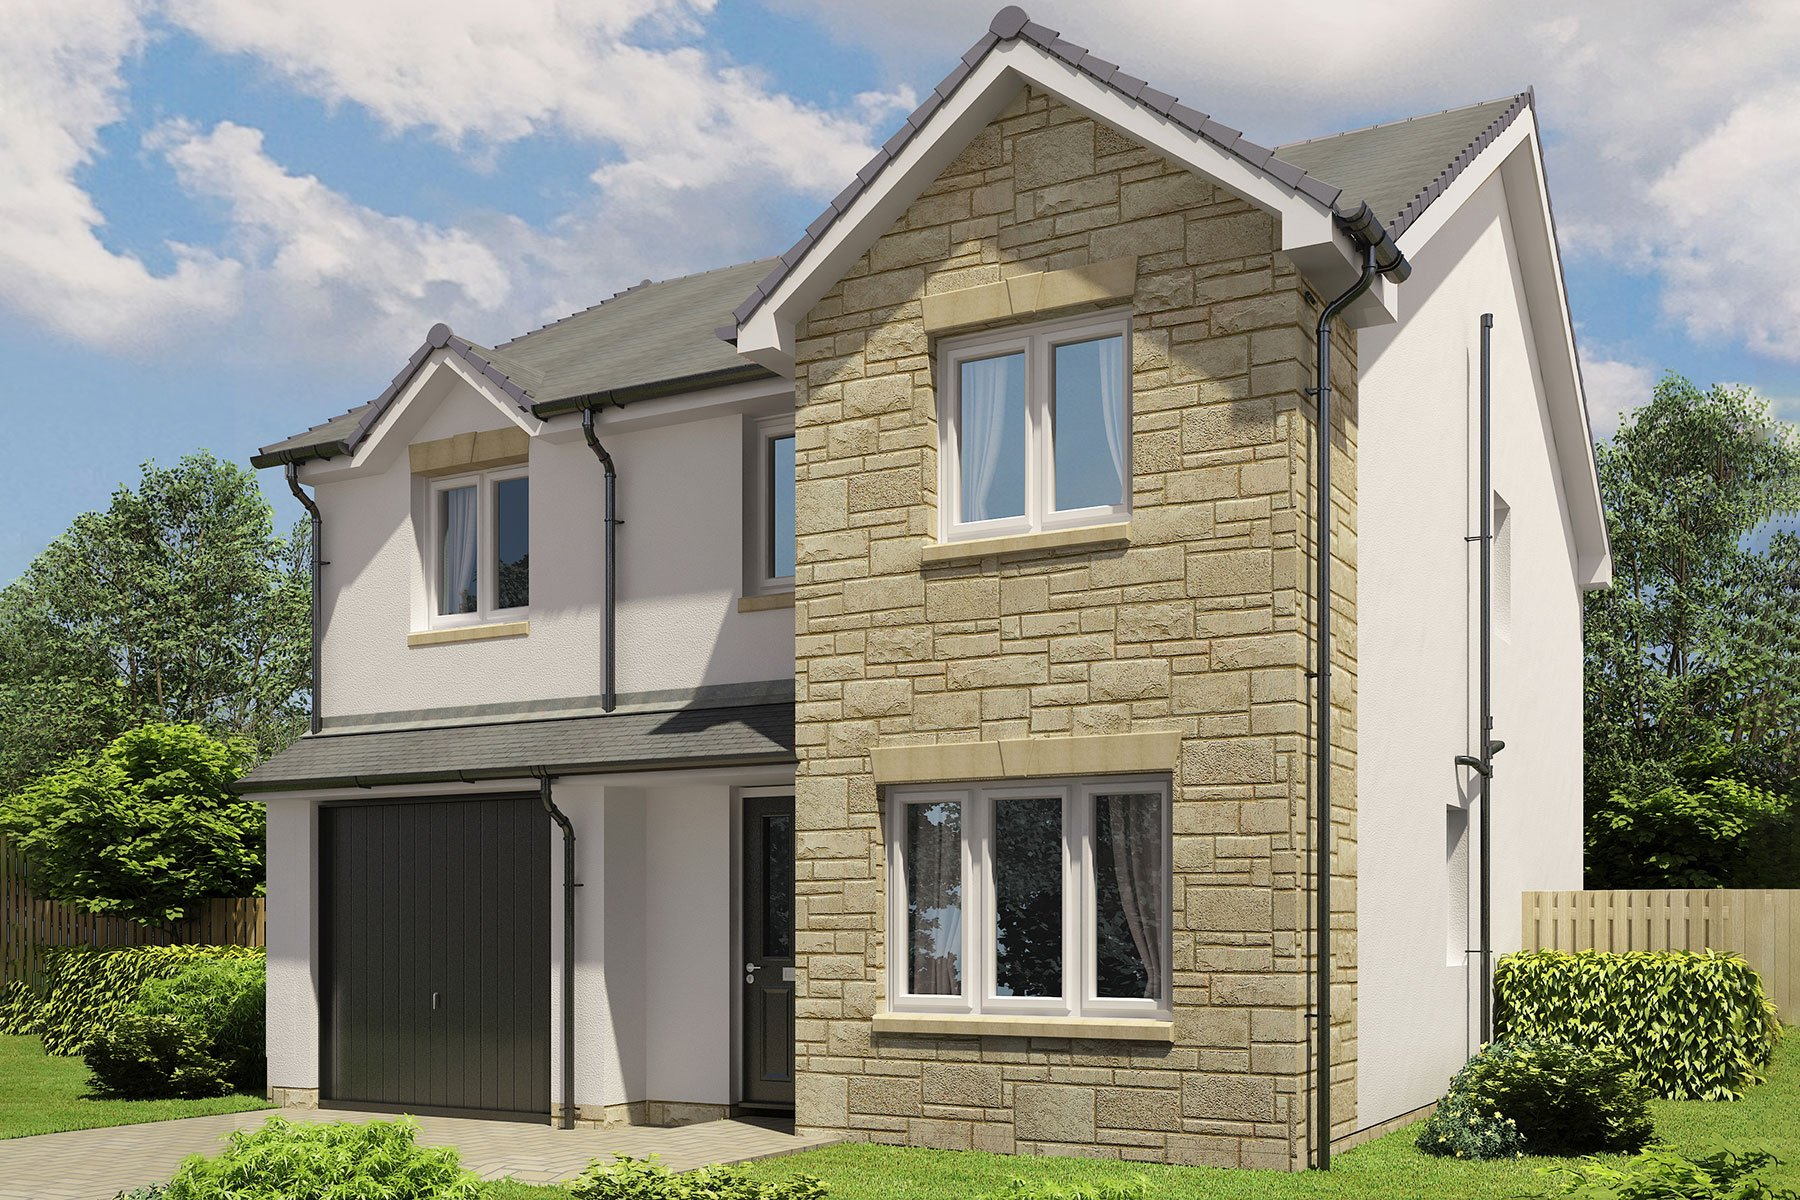 New Homes In Heartlands Taylor Wimpey